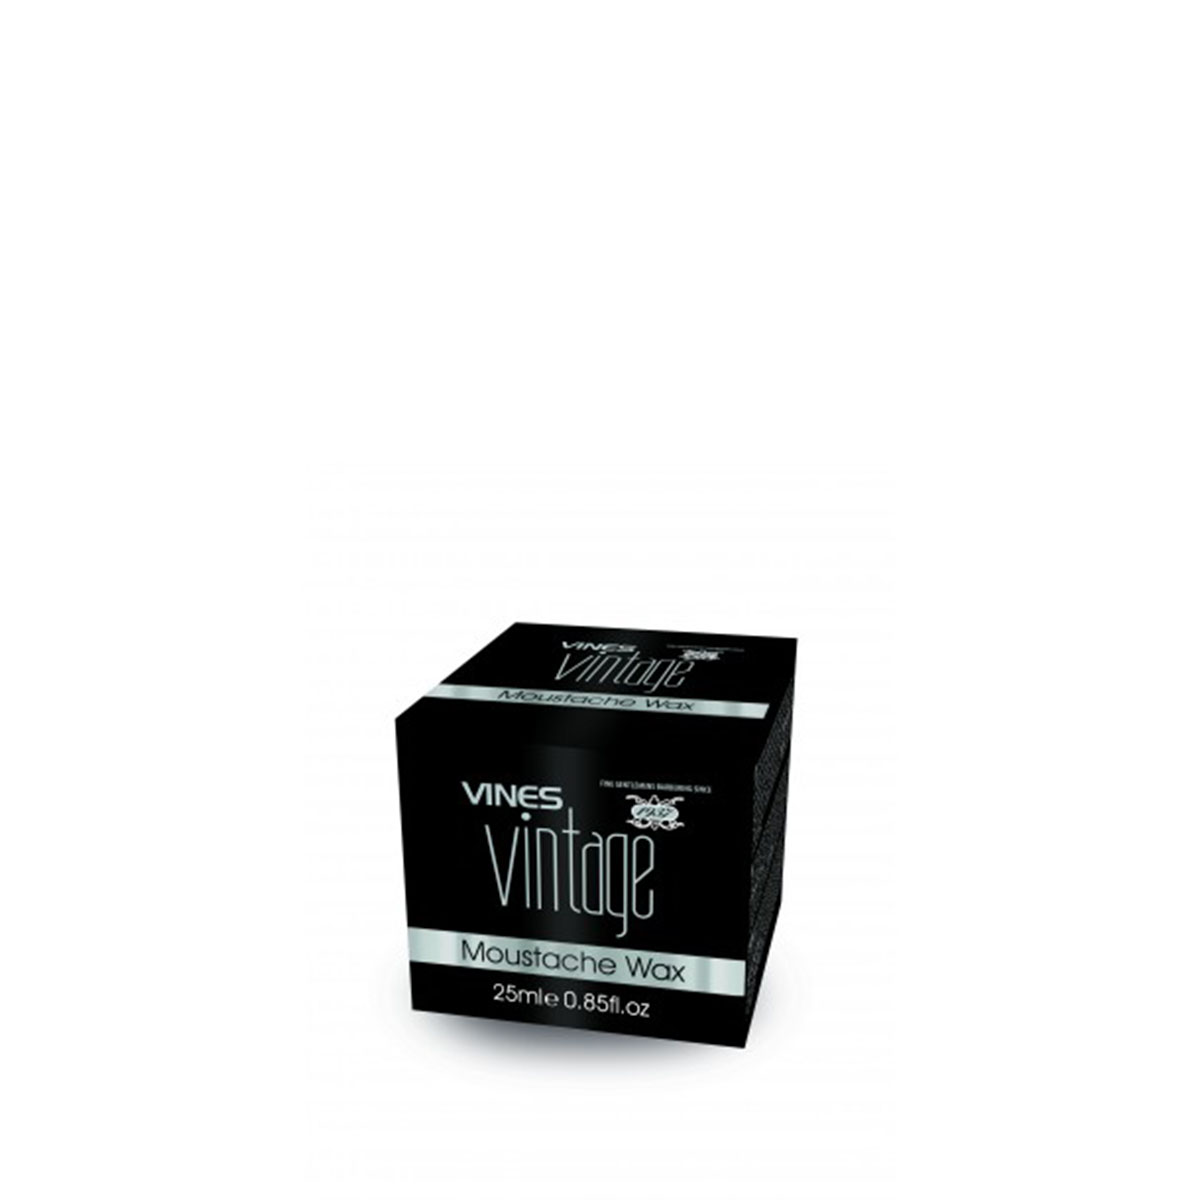 Wax Moustache25ml Vines Vintage